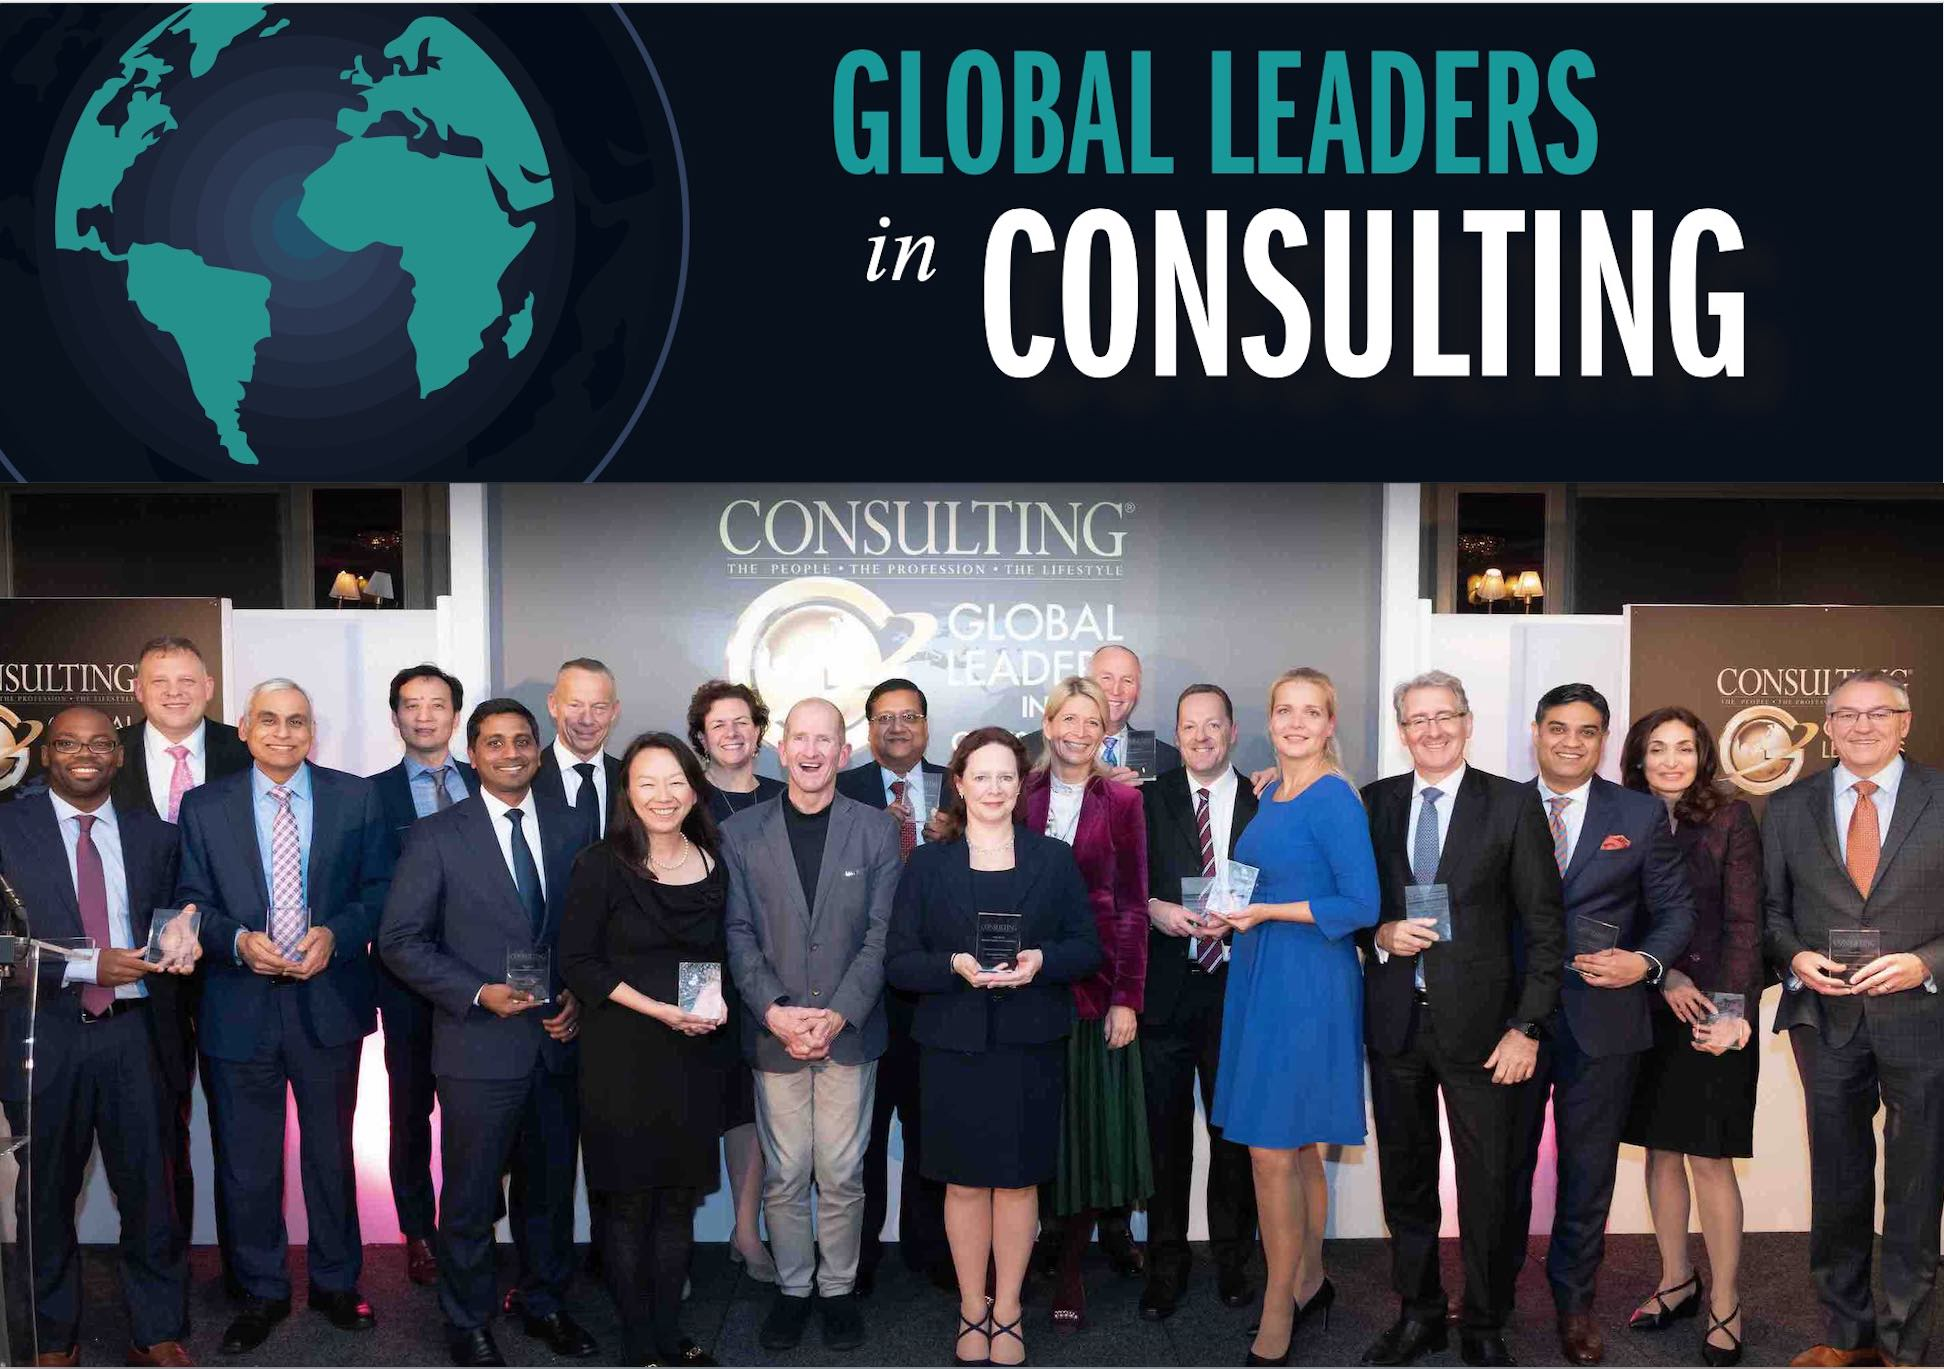 The 2019 Global Leaders in Consulting